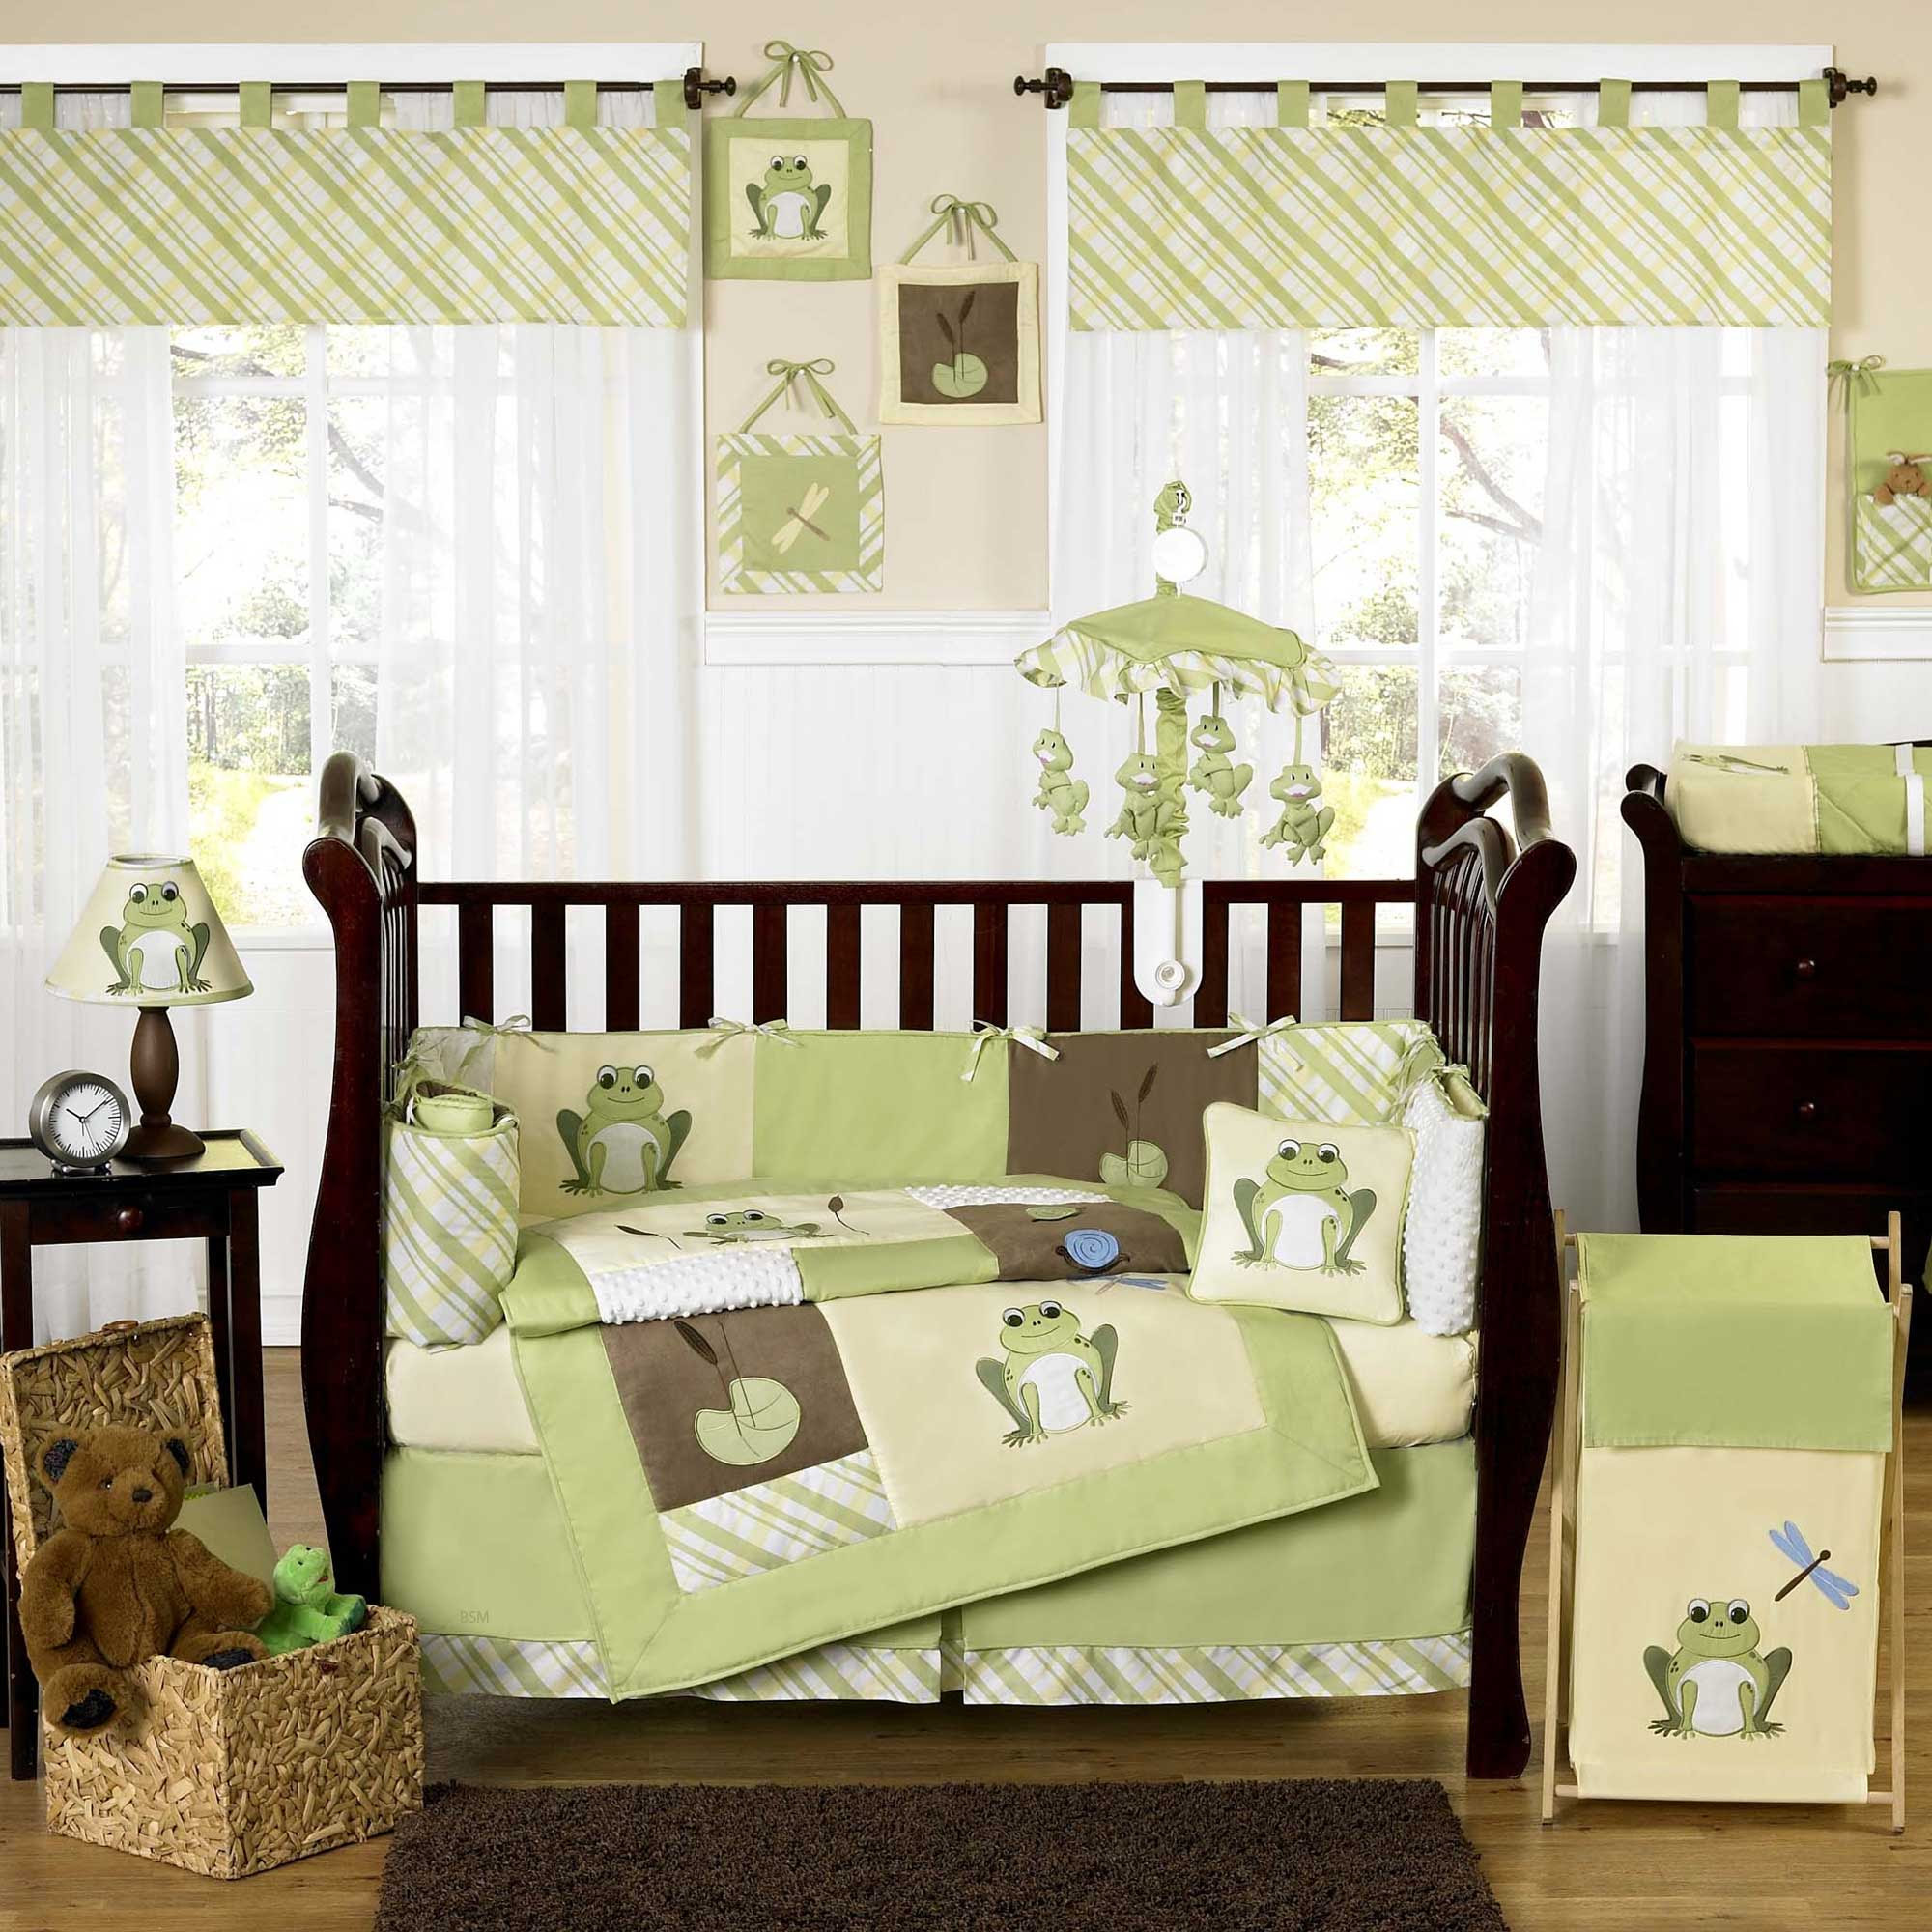 Themes For Baby Rooms Ideas - HomesFeed